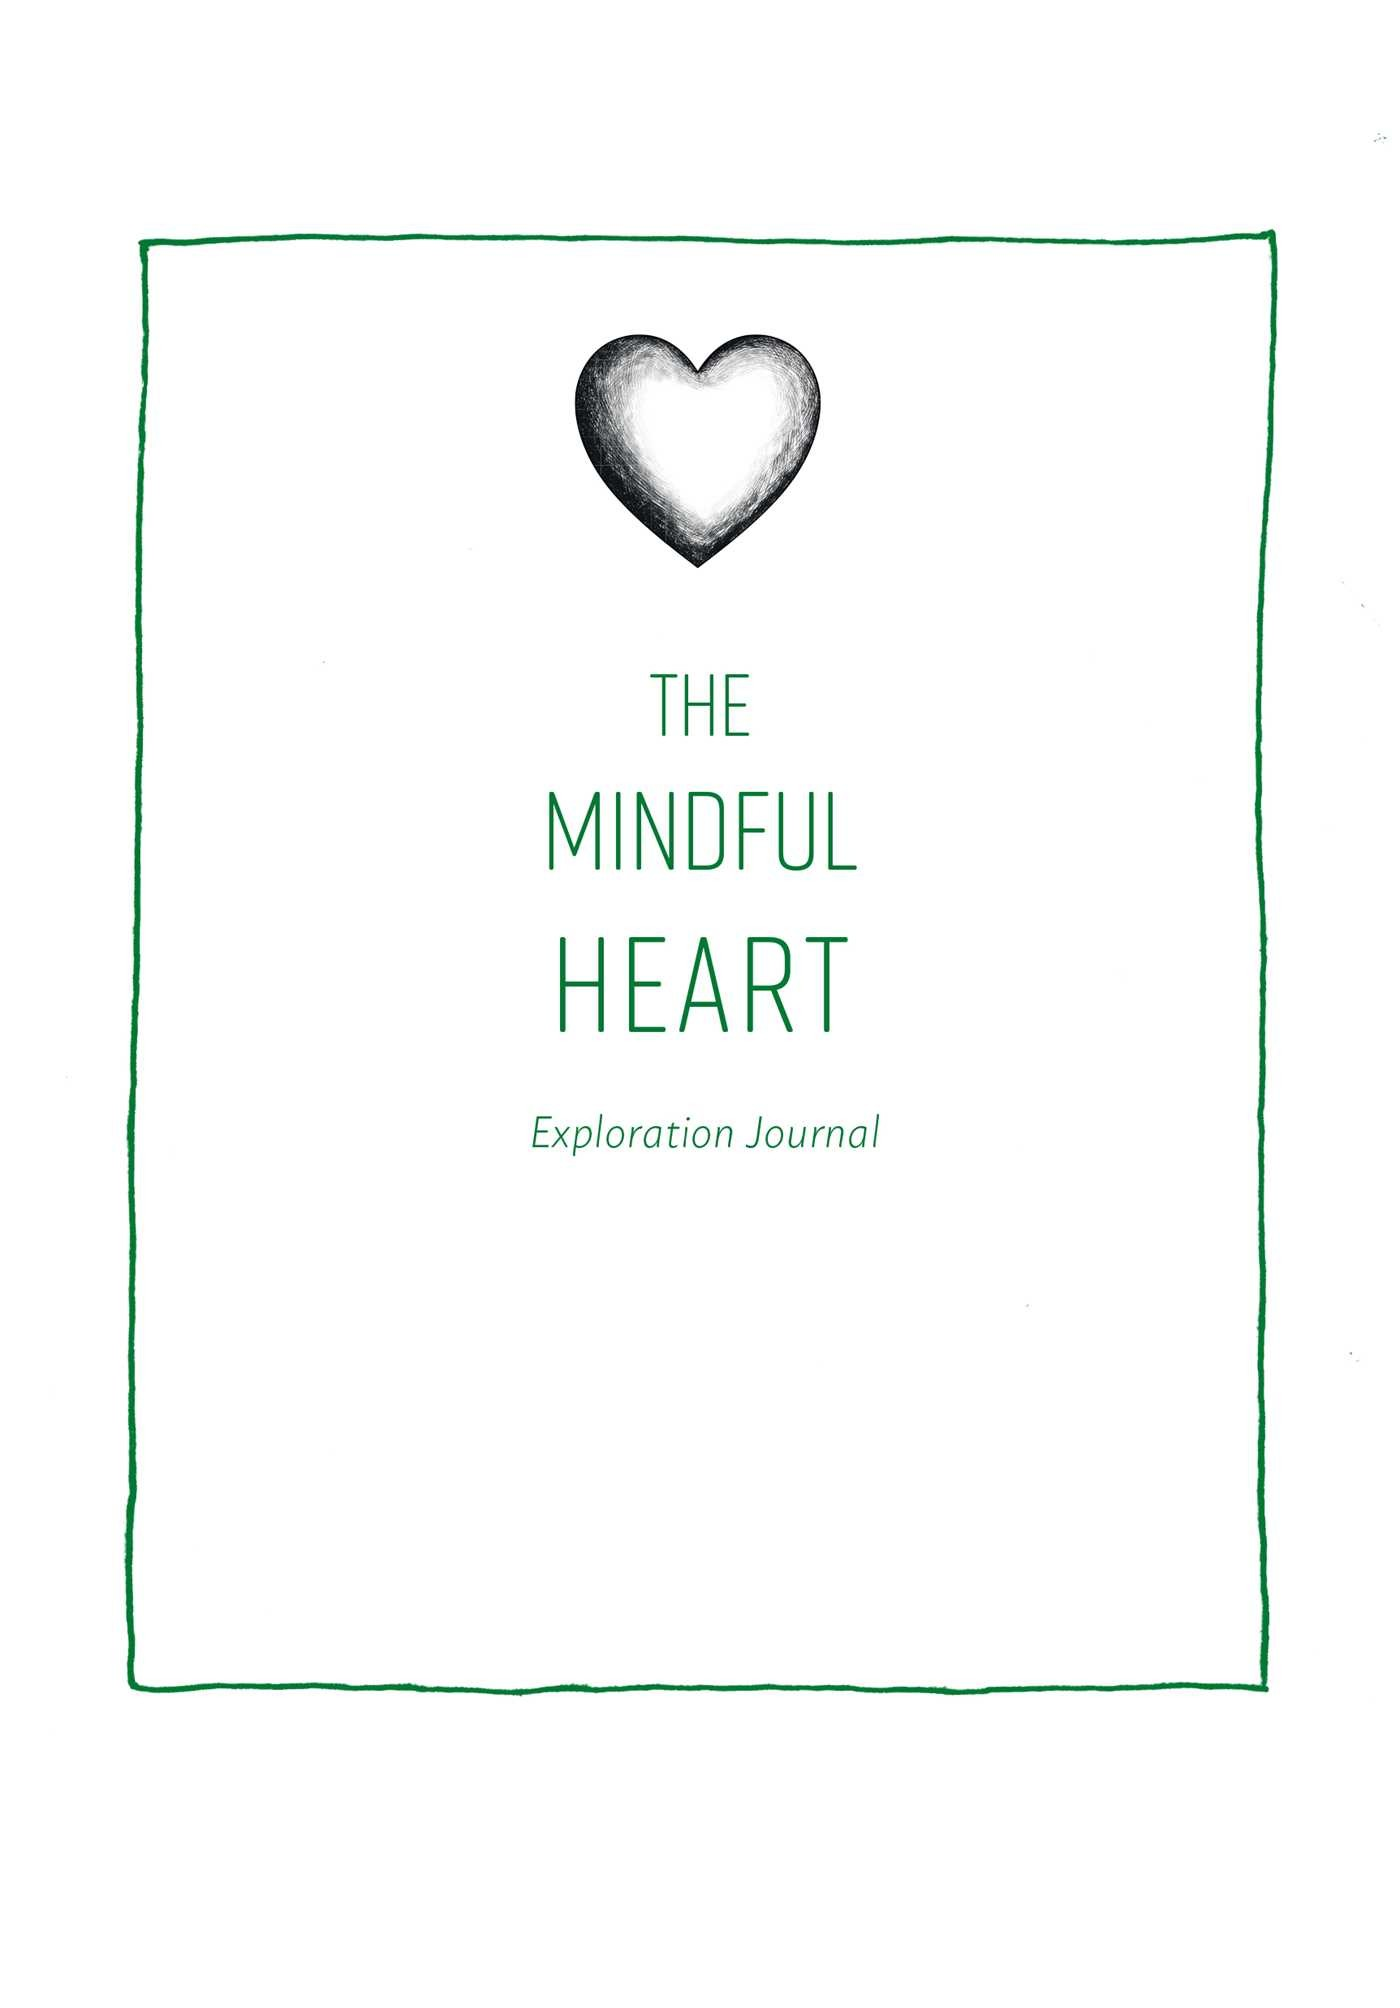 The mindful heart 9781683835530.in01